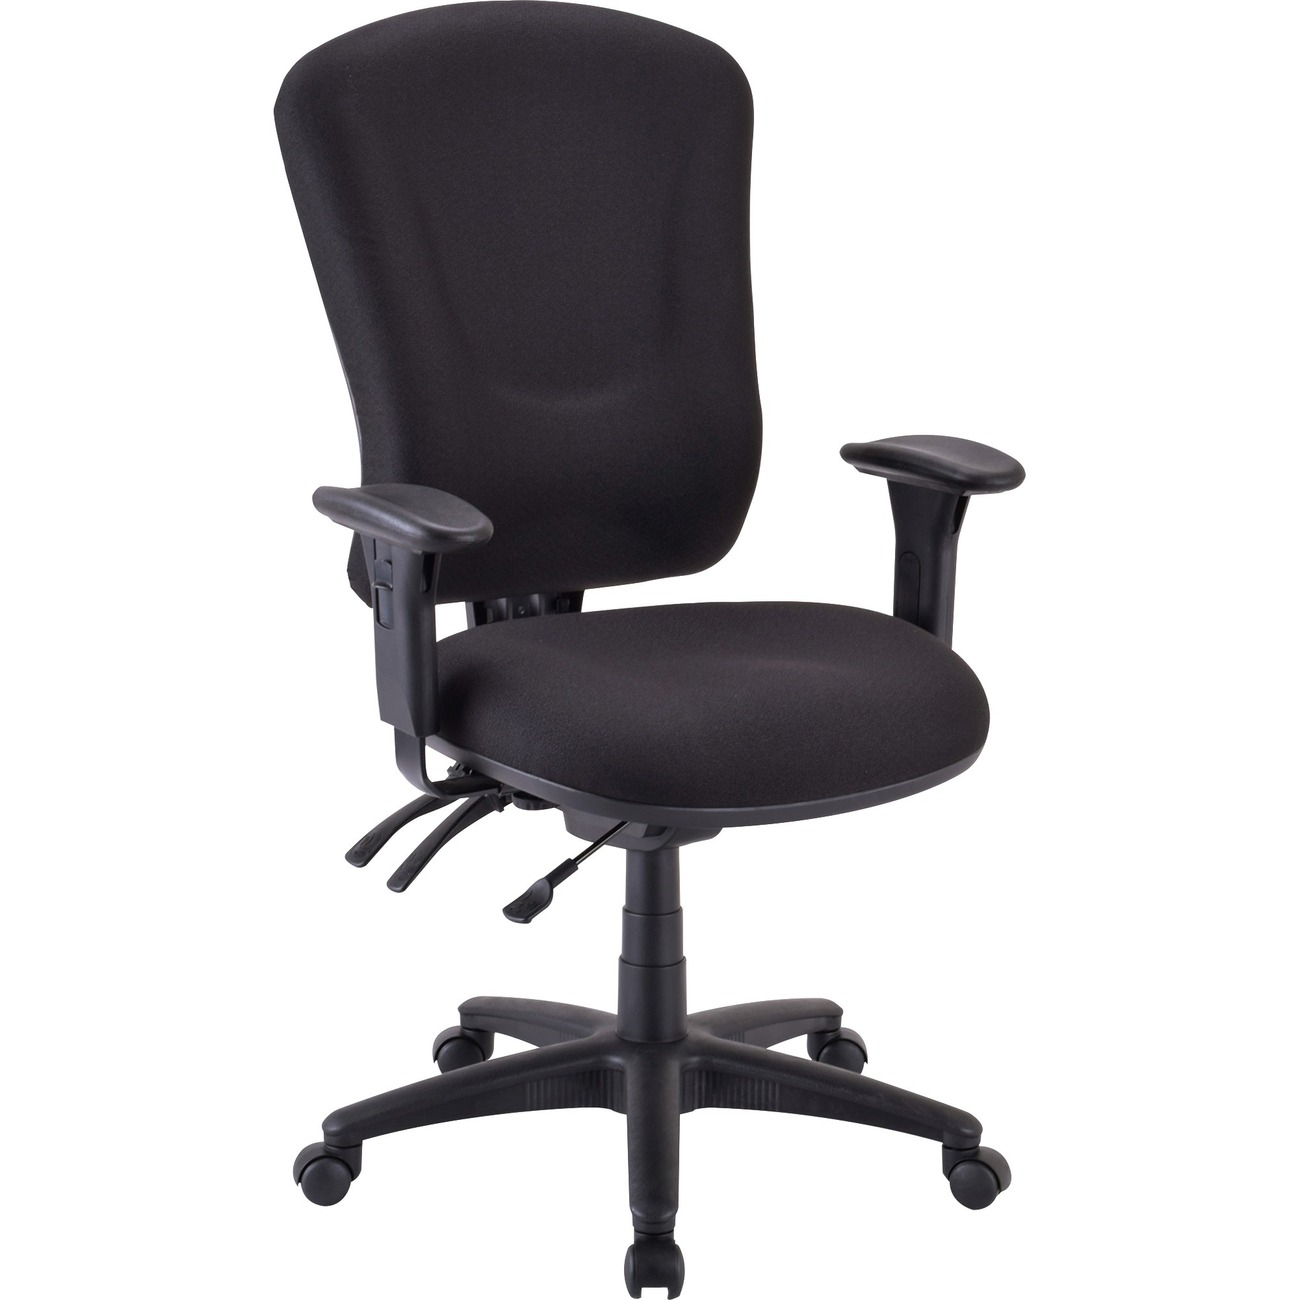 chair with accessories ebay lift chairs west coast office supplies furniture